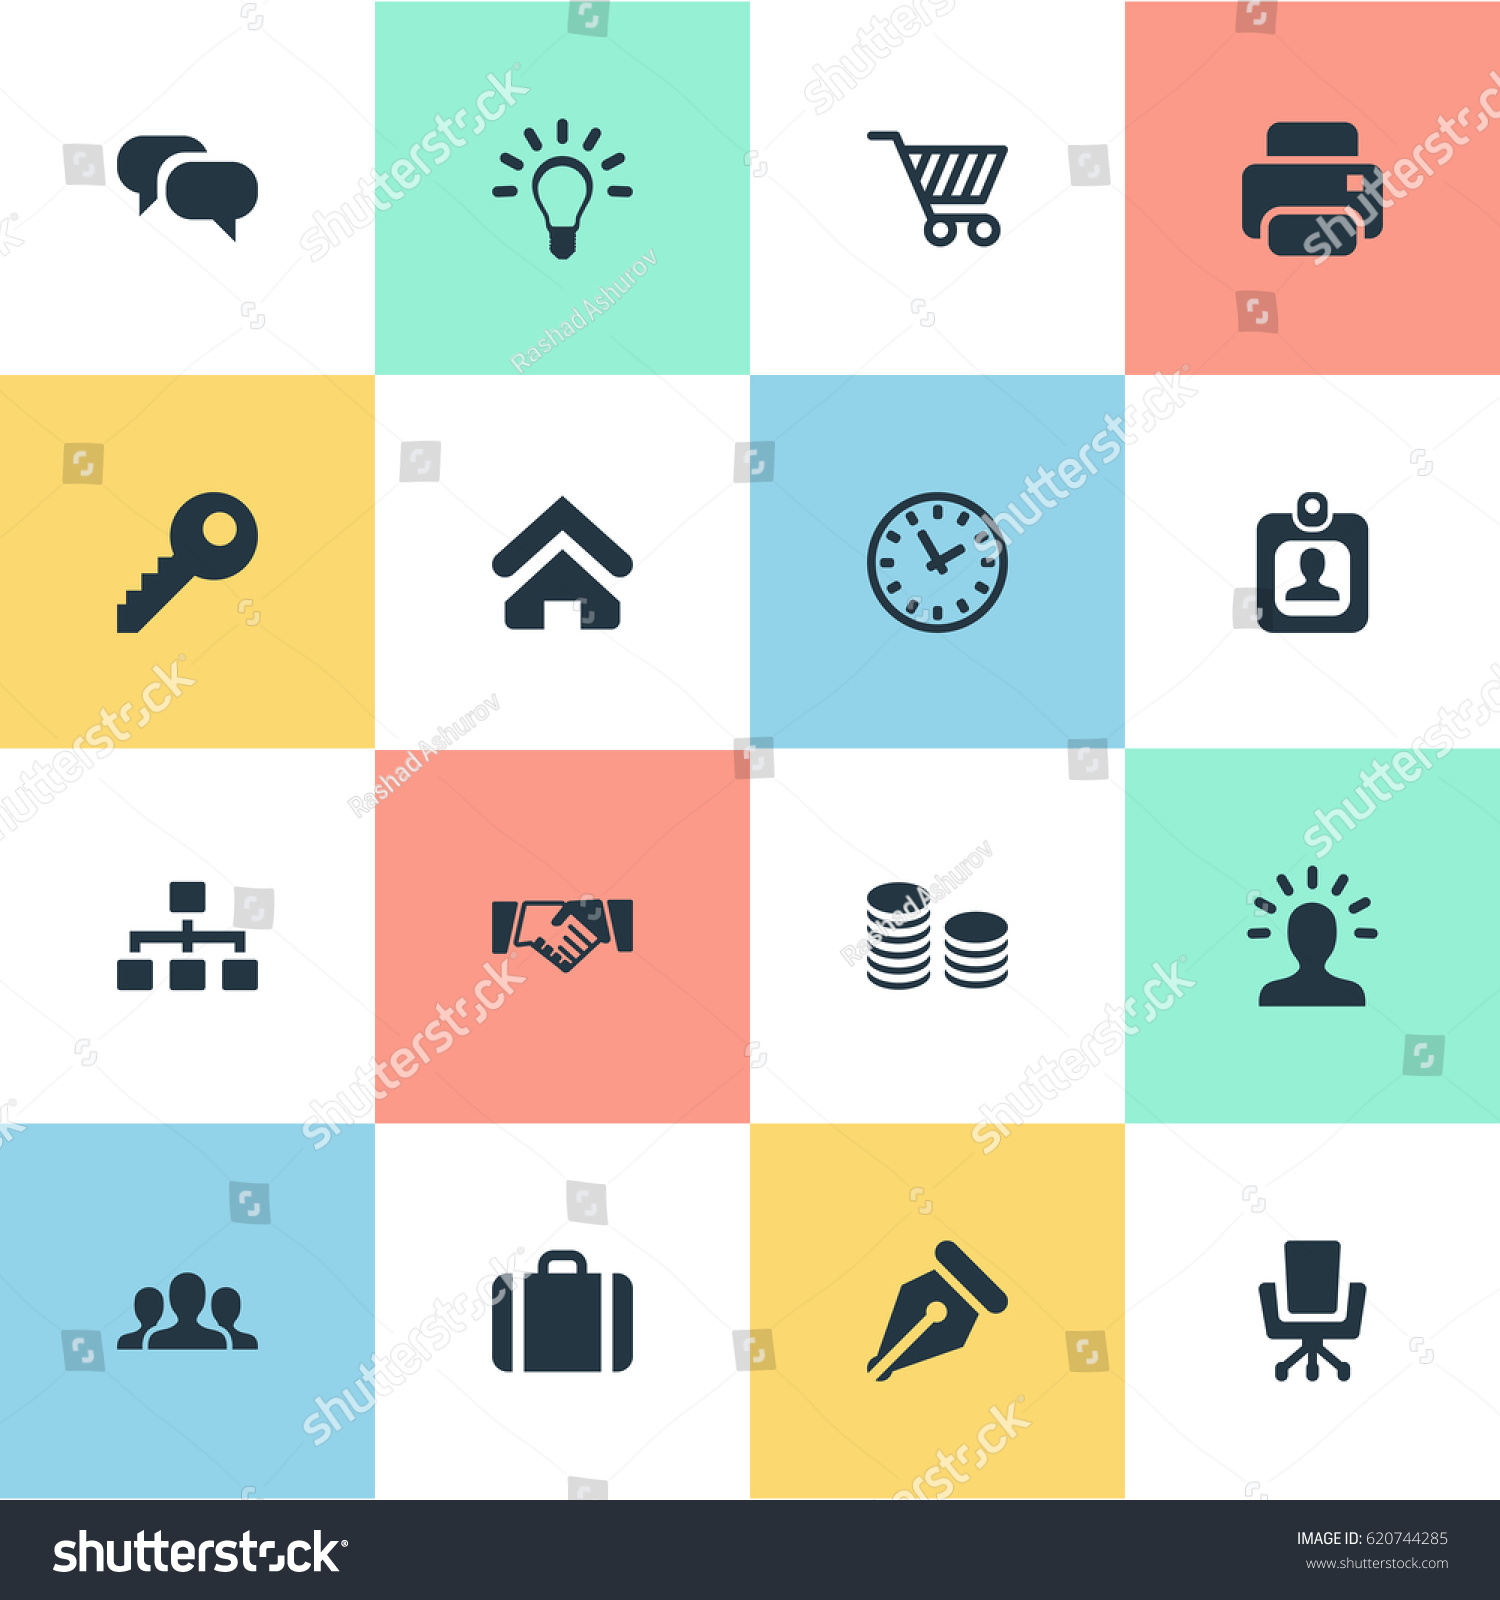 Vector Illustration Set Of Simple Business Icons. Elements Work Seat Handbag Group Synonyms  sc 1 st  Shutterstock & Vector Illustration Set Simple Business Icons Stock Vector 620744285 ...